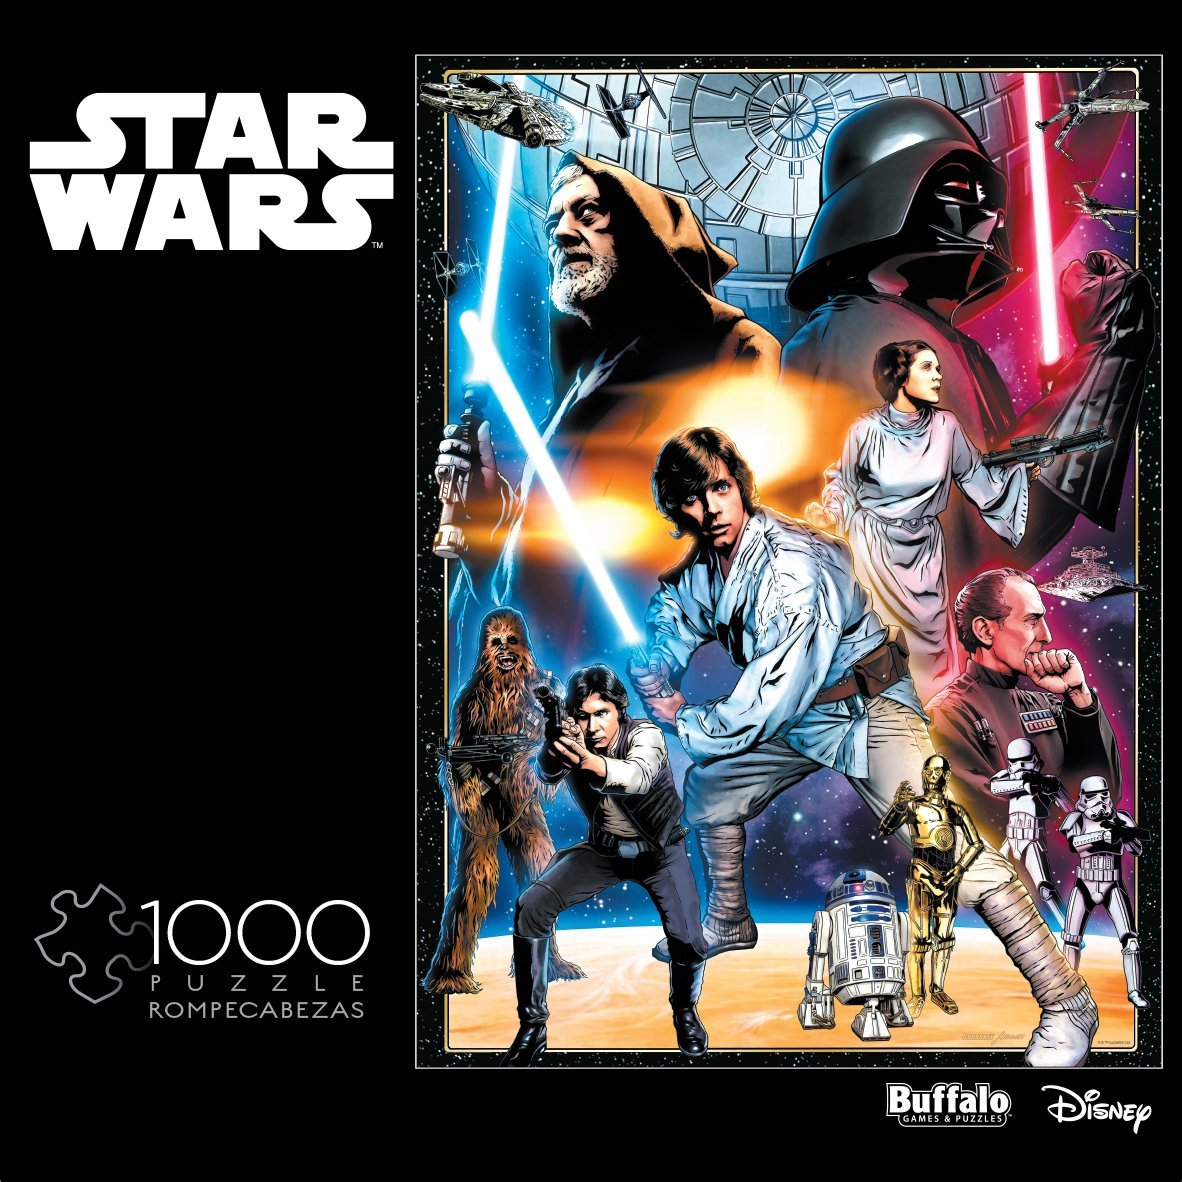 Star Wars Assortment: The Circle Is Now Complete 1000